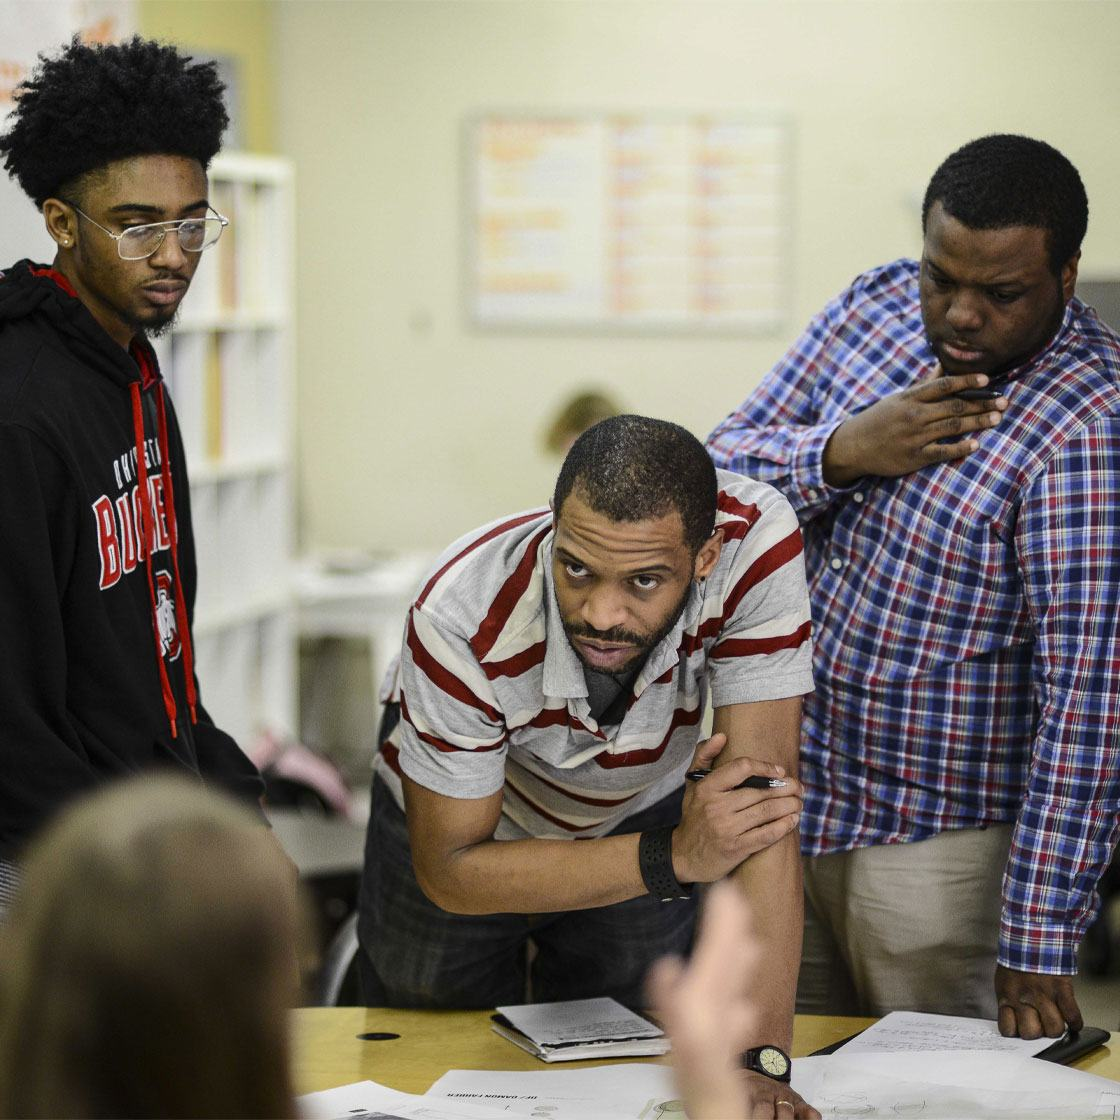 Three Black male-presenting individuals lean over a table, looking at a collaborative project.